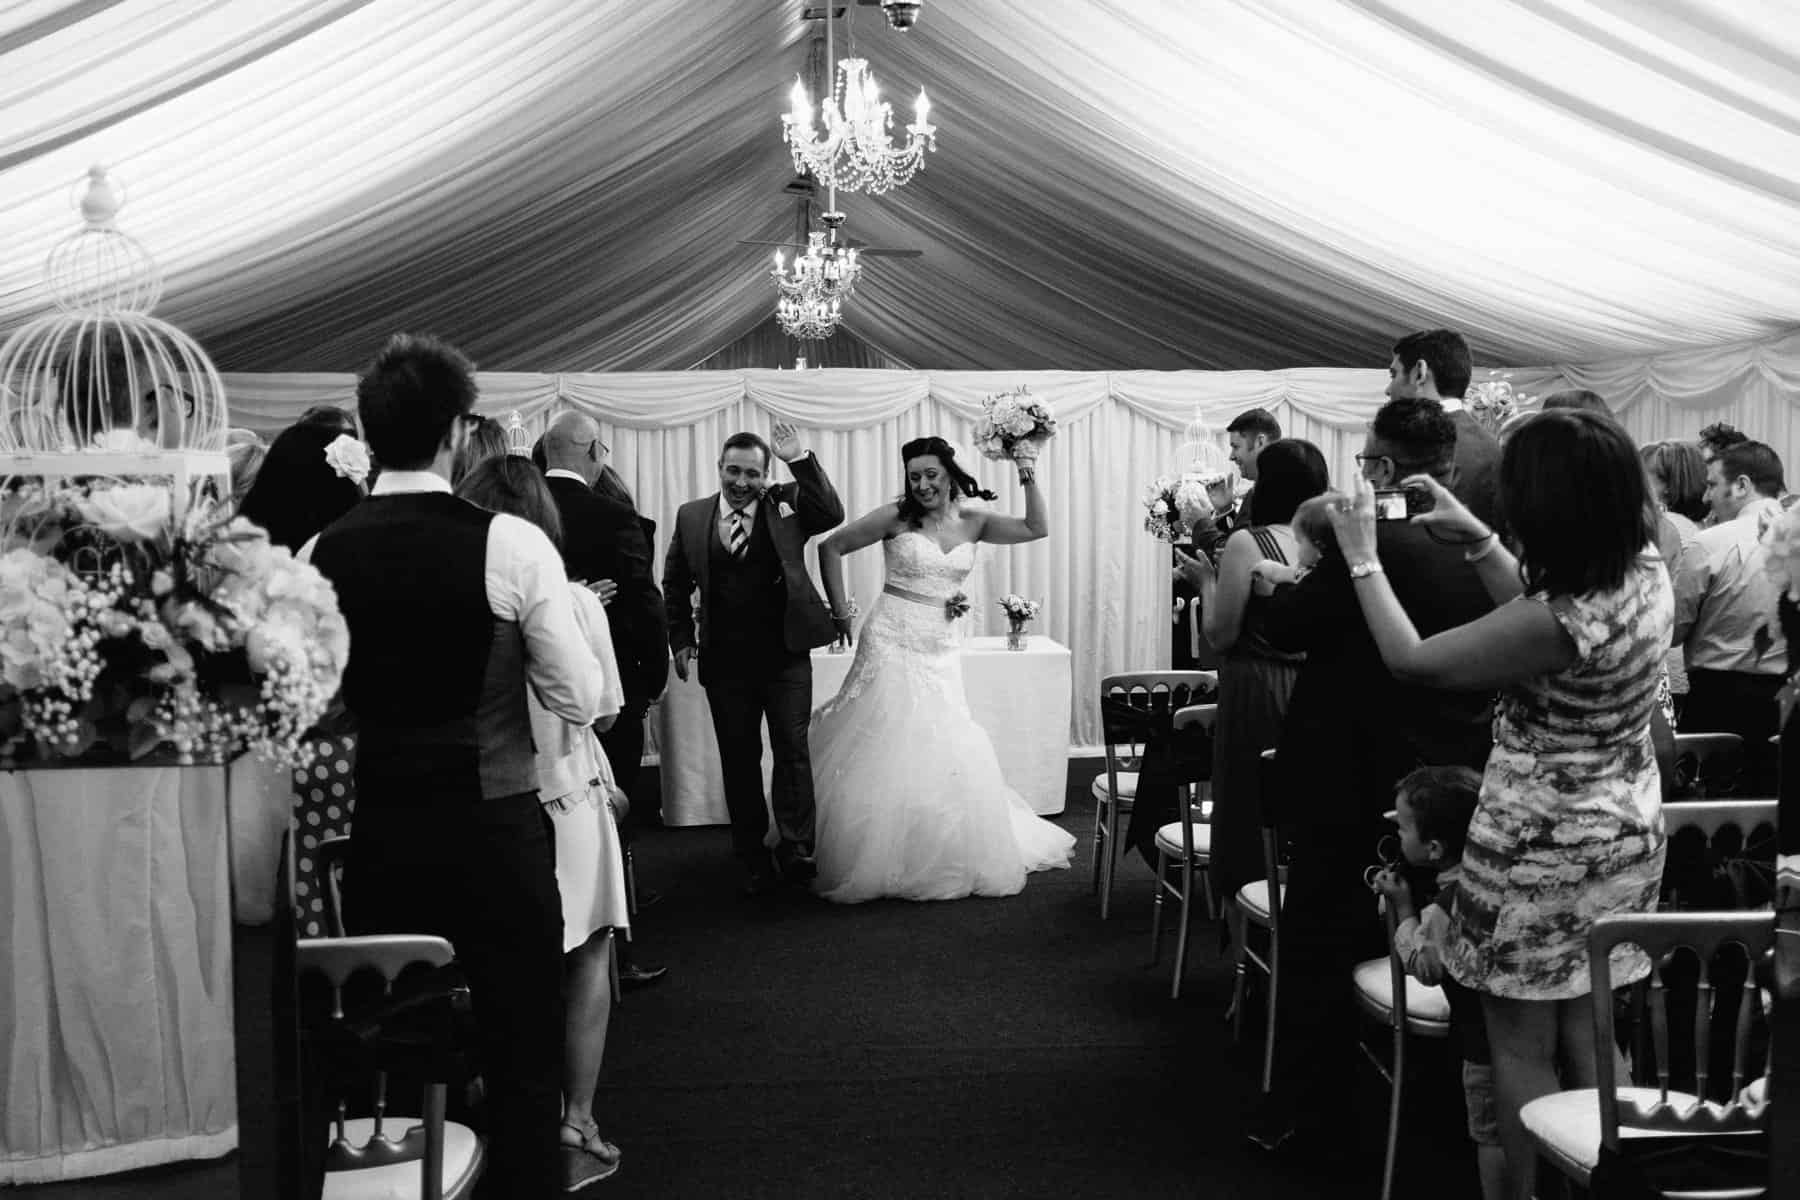 wedding photography bride and groom ceremony (1 of 1)